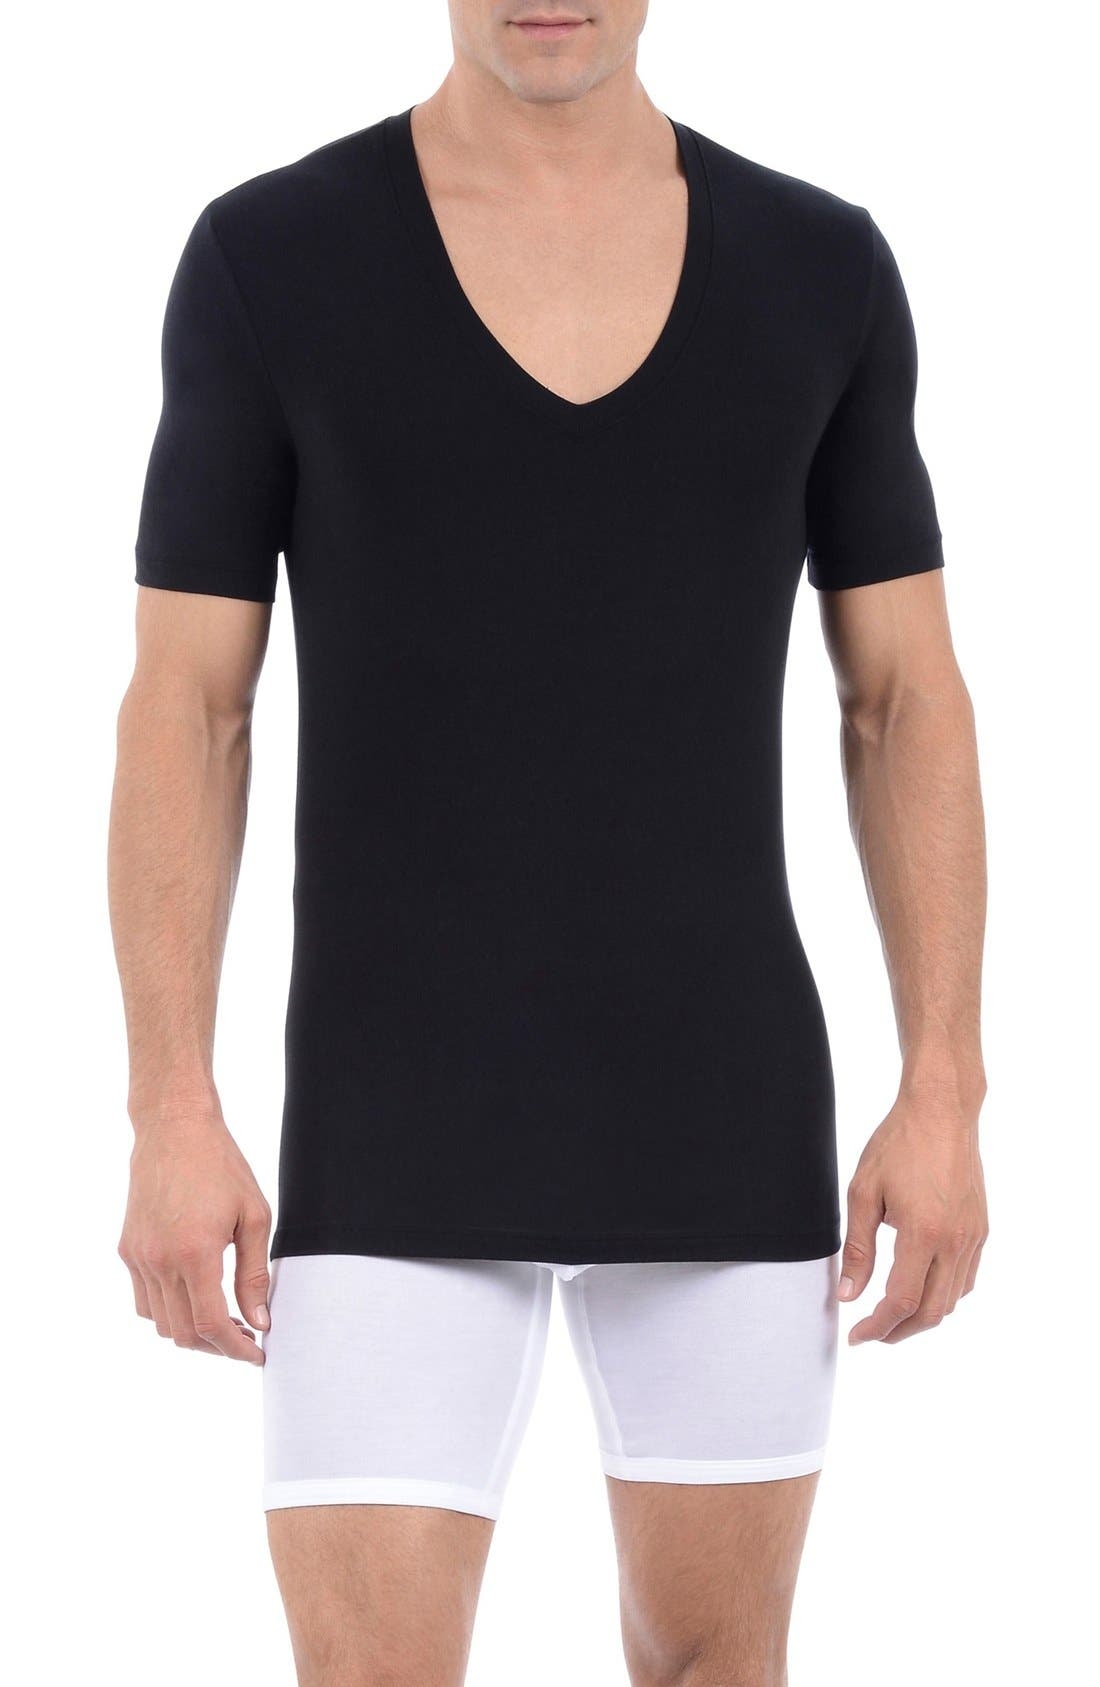 Main Image - Tommy John 'Cool Cotton' Deep V-Neck Undershirt